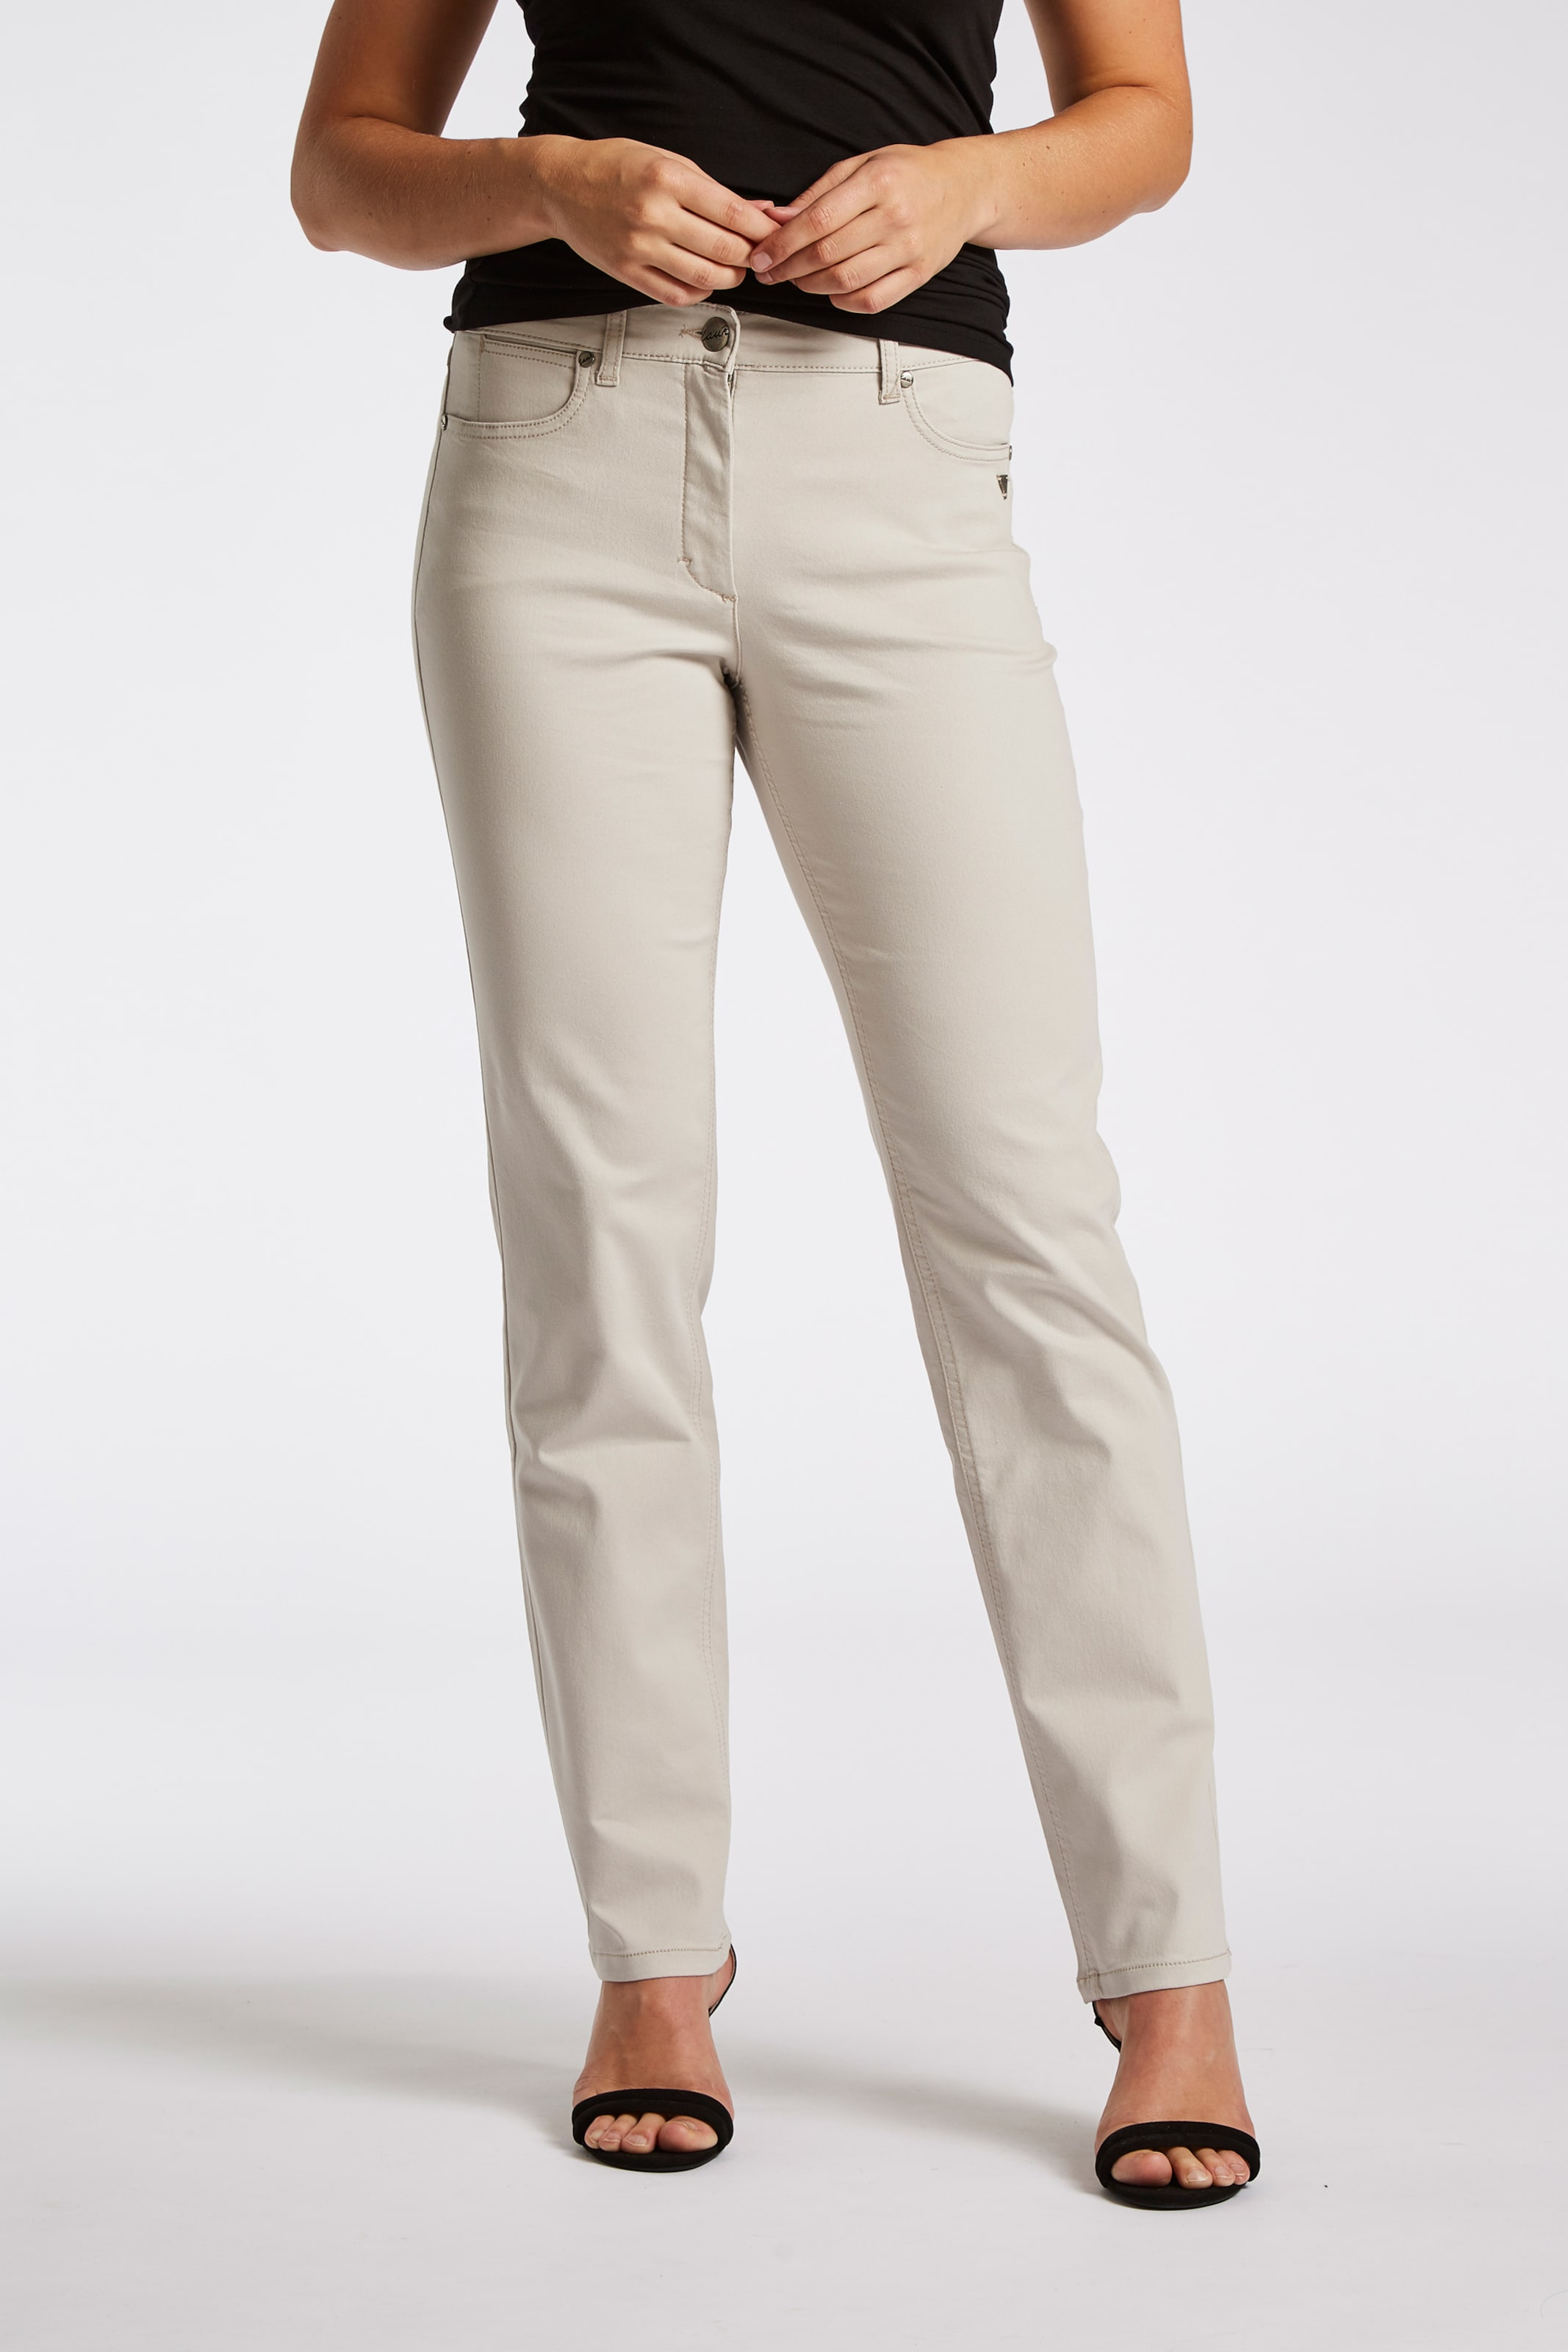 Laurie In style Beige Im 5 'charlotte' Stoffhose pocket OXNn0wk8PZ